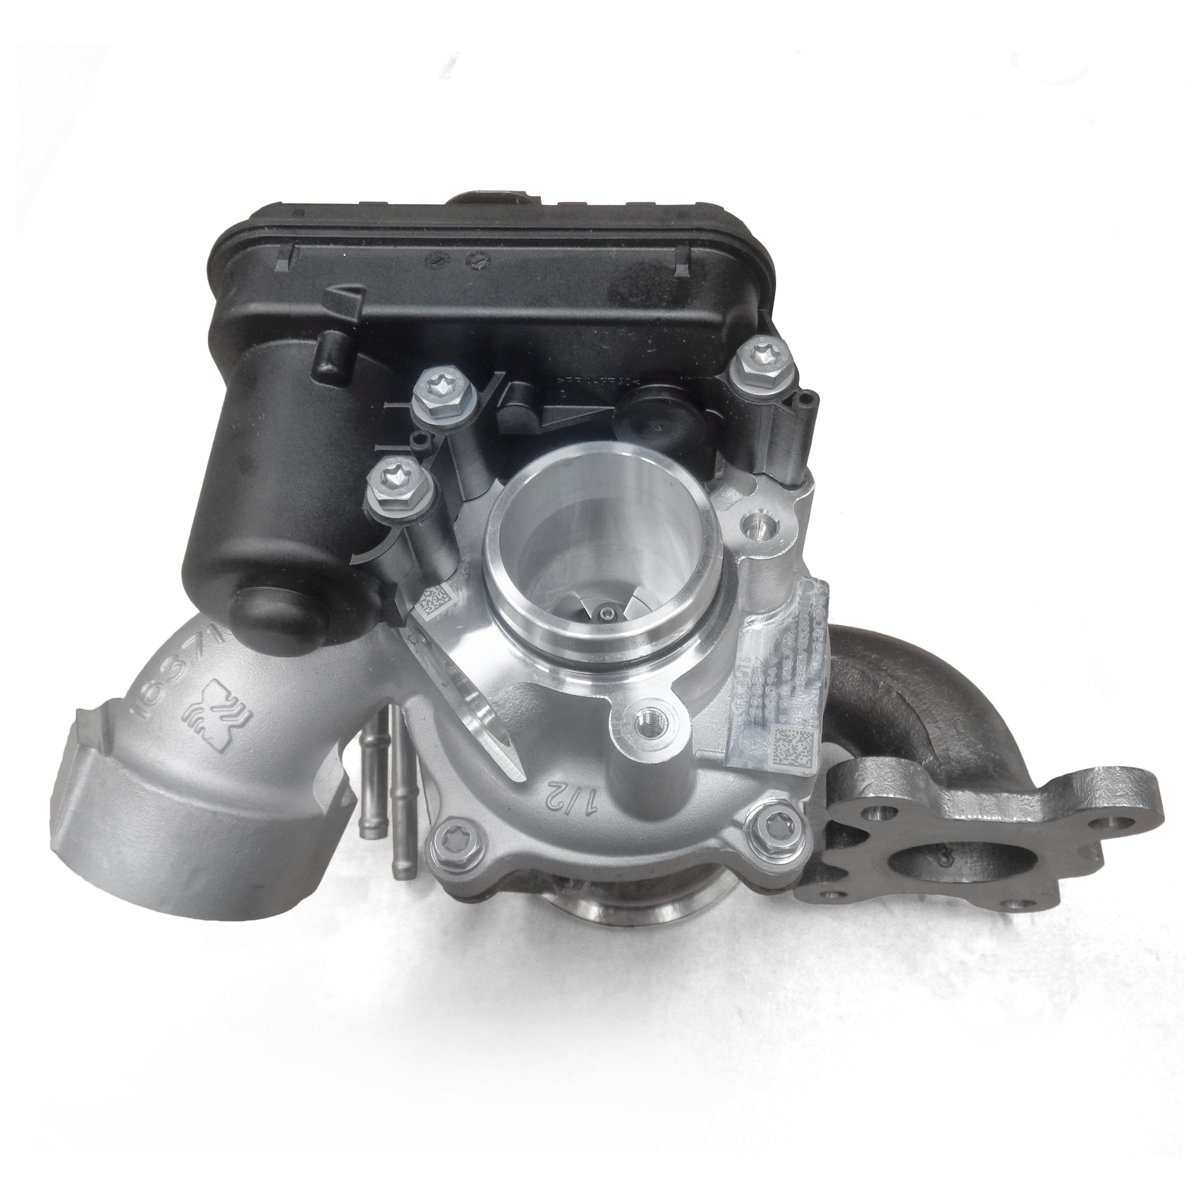 Turbina do Motor Dhs 3cil 1.0 Tsi - Turbinas - Unidade -